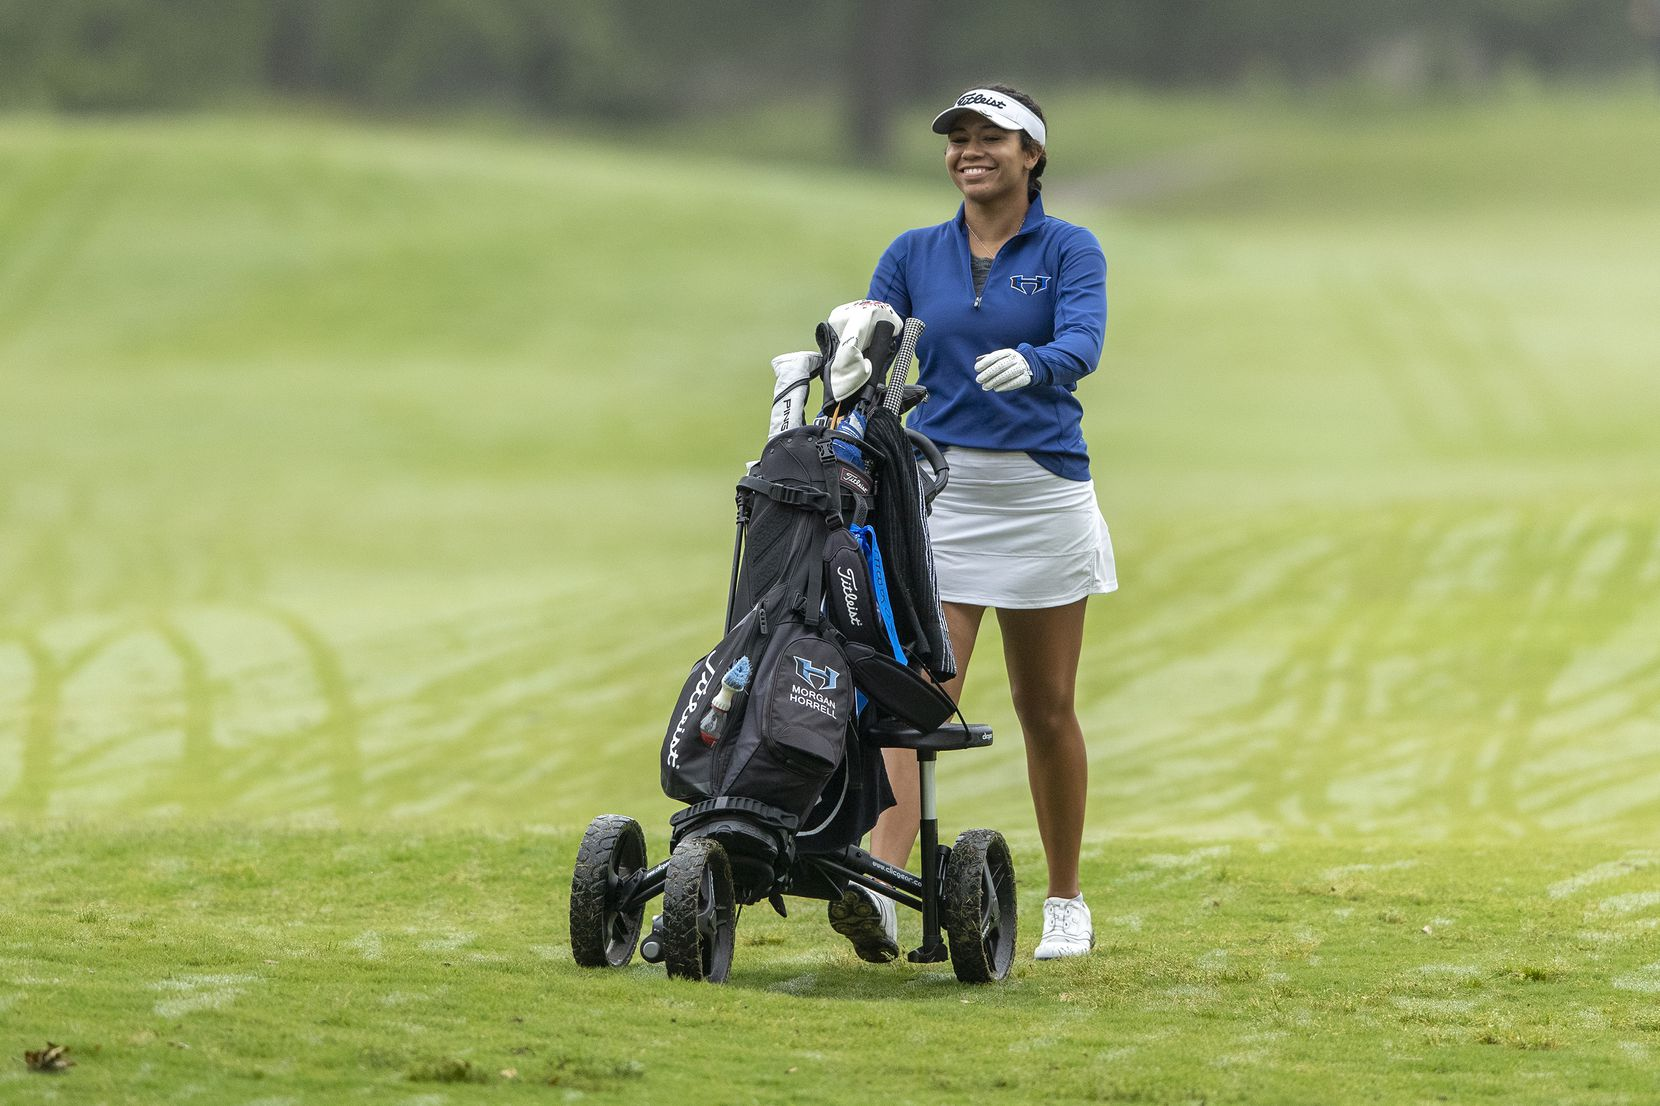 Lewisville Hebron's Morgan Horrell walks to the 1st green during round 2 of the UIL Class 5A girls golf tournament in Georgetown, Tuesday, May 11, 2021. (Stephen Spillman/Special Contributor)